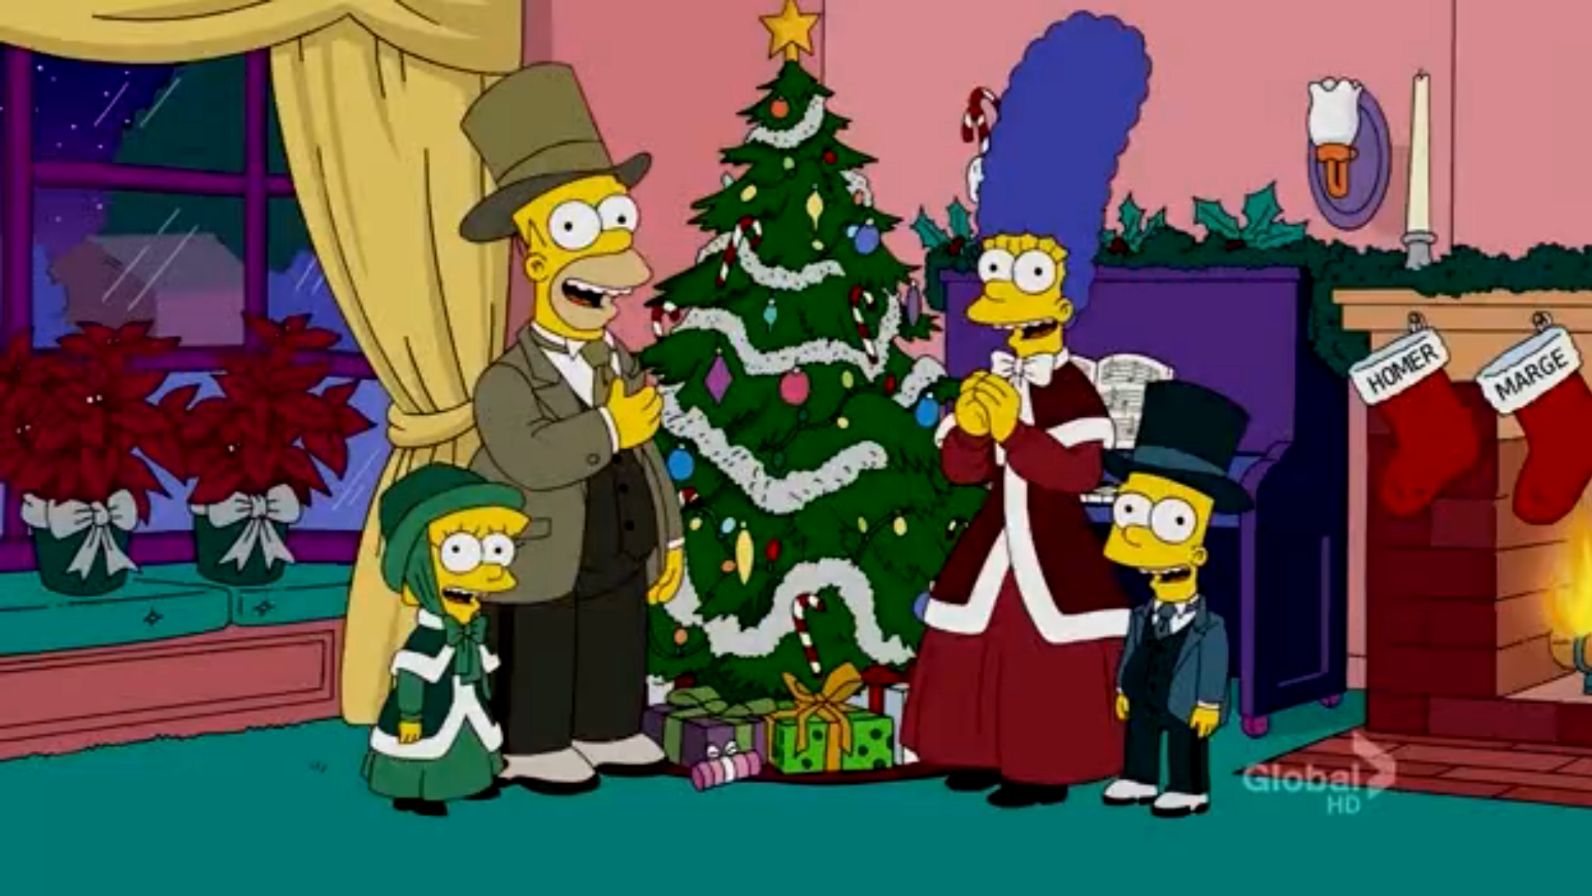 The Simpsons Christmas Episodes.The 12 Days Of Christmas Couch Gag Simpsons Wiki Fandom